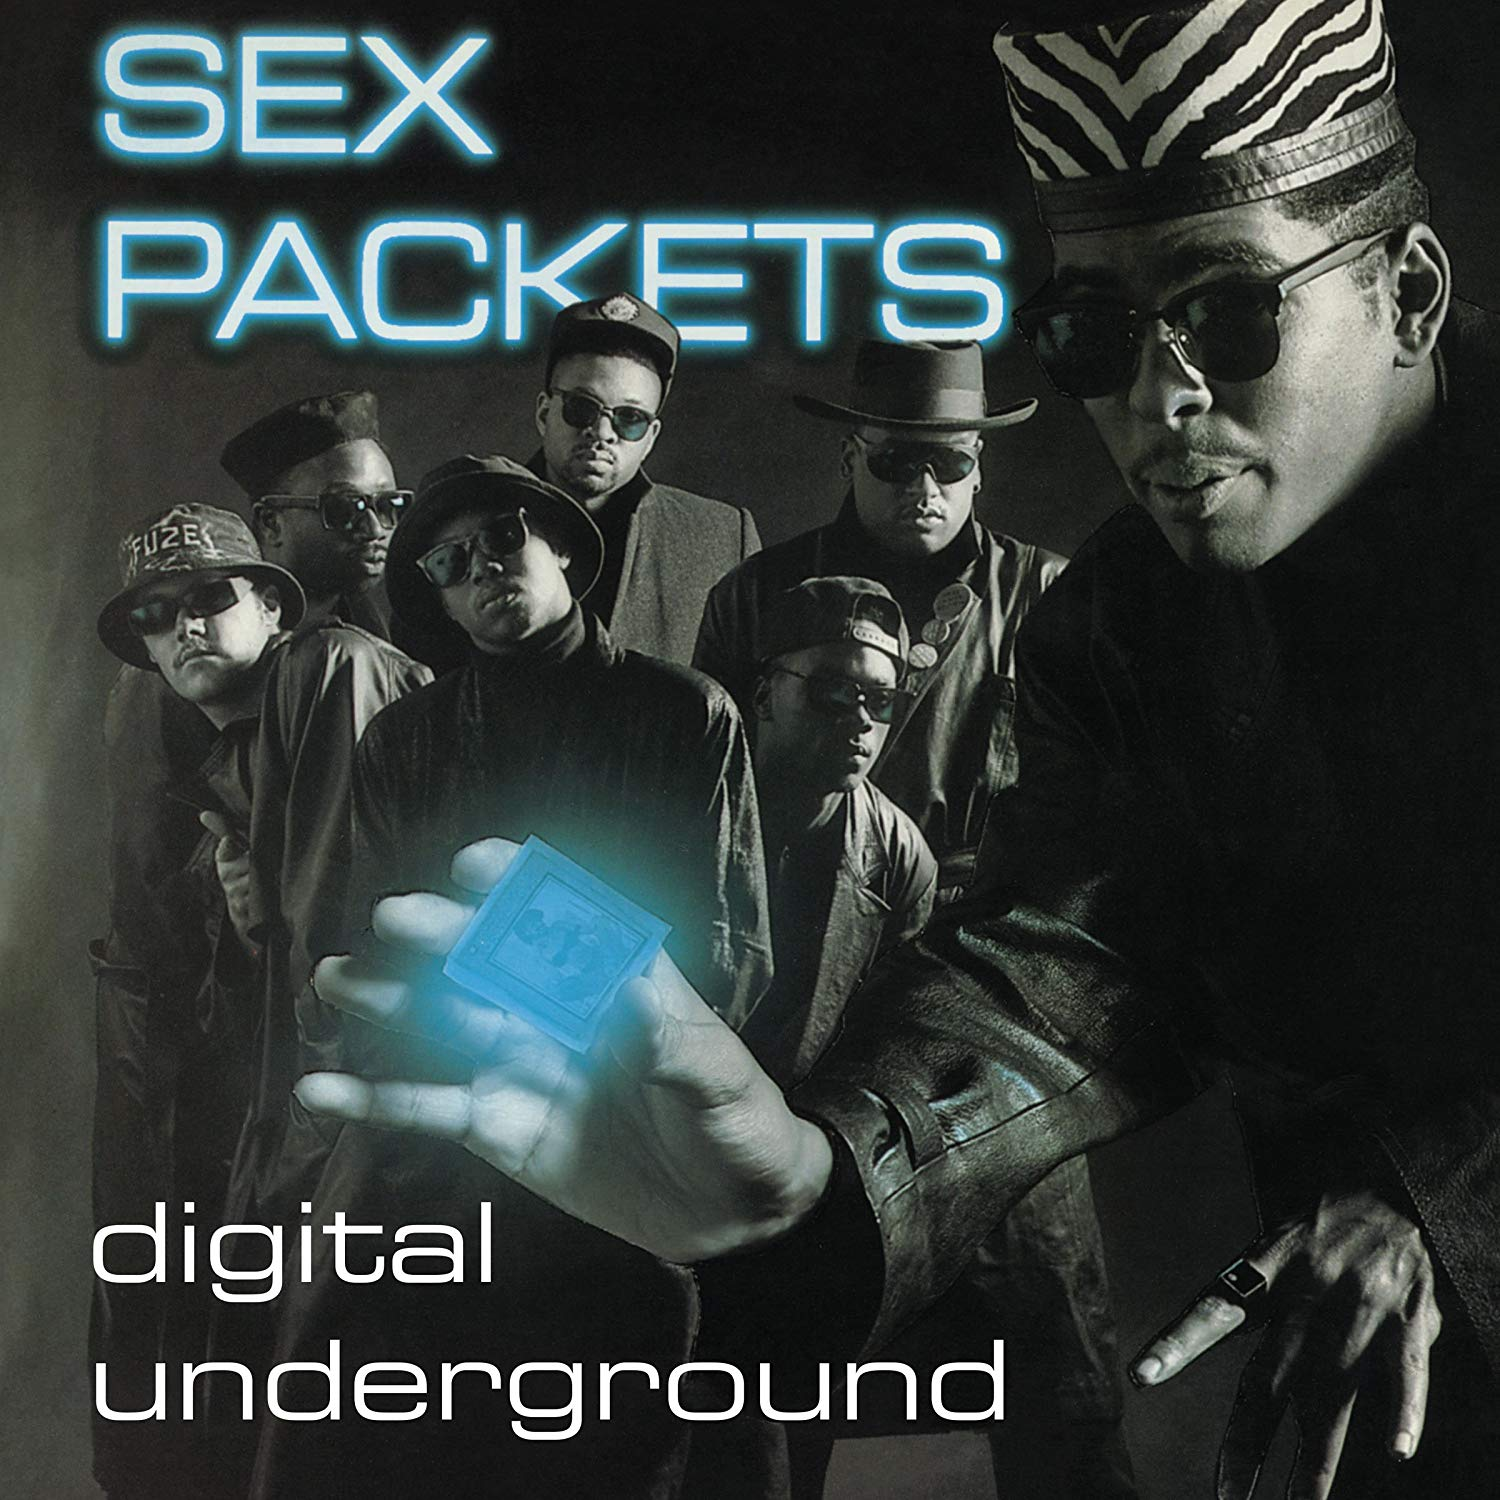 audio review : Sex Packets ( album ) ... Digital Underground